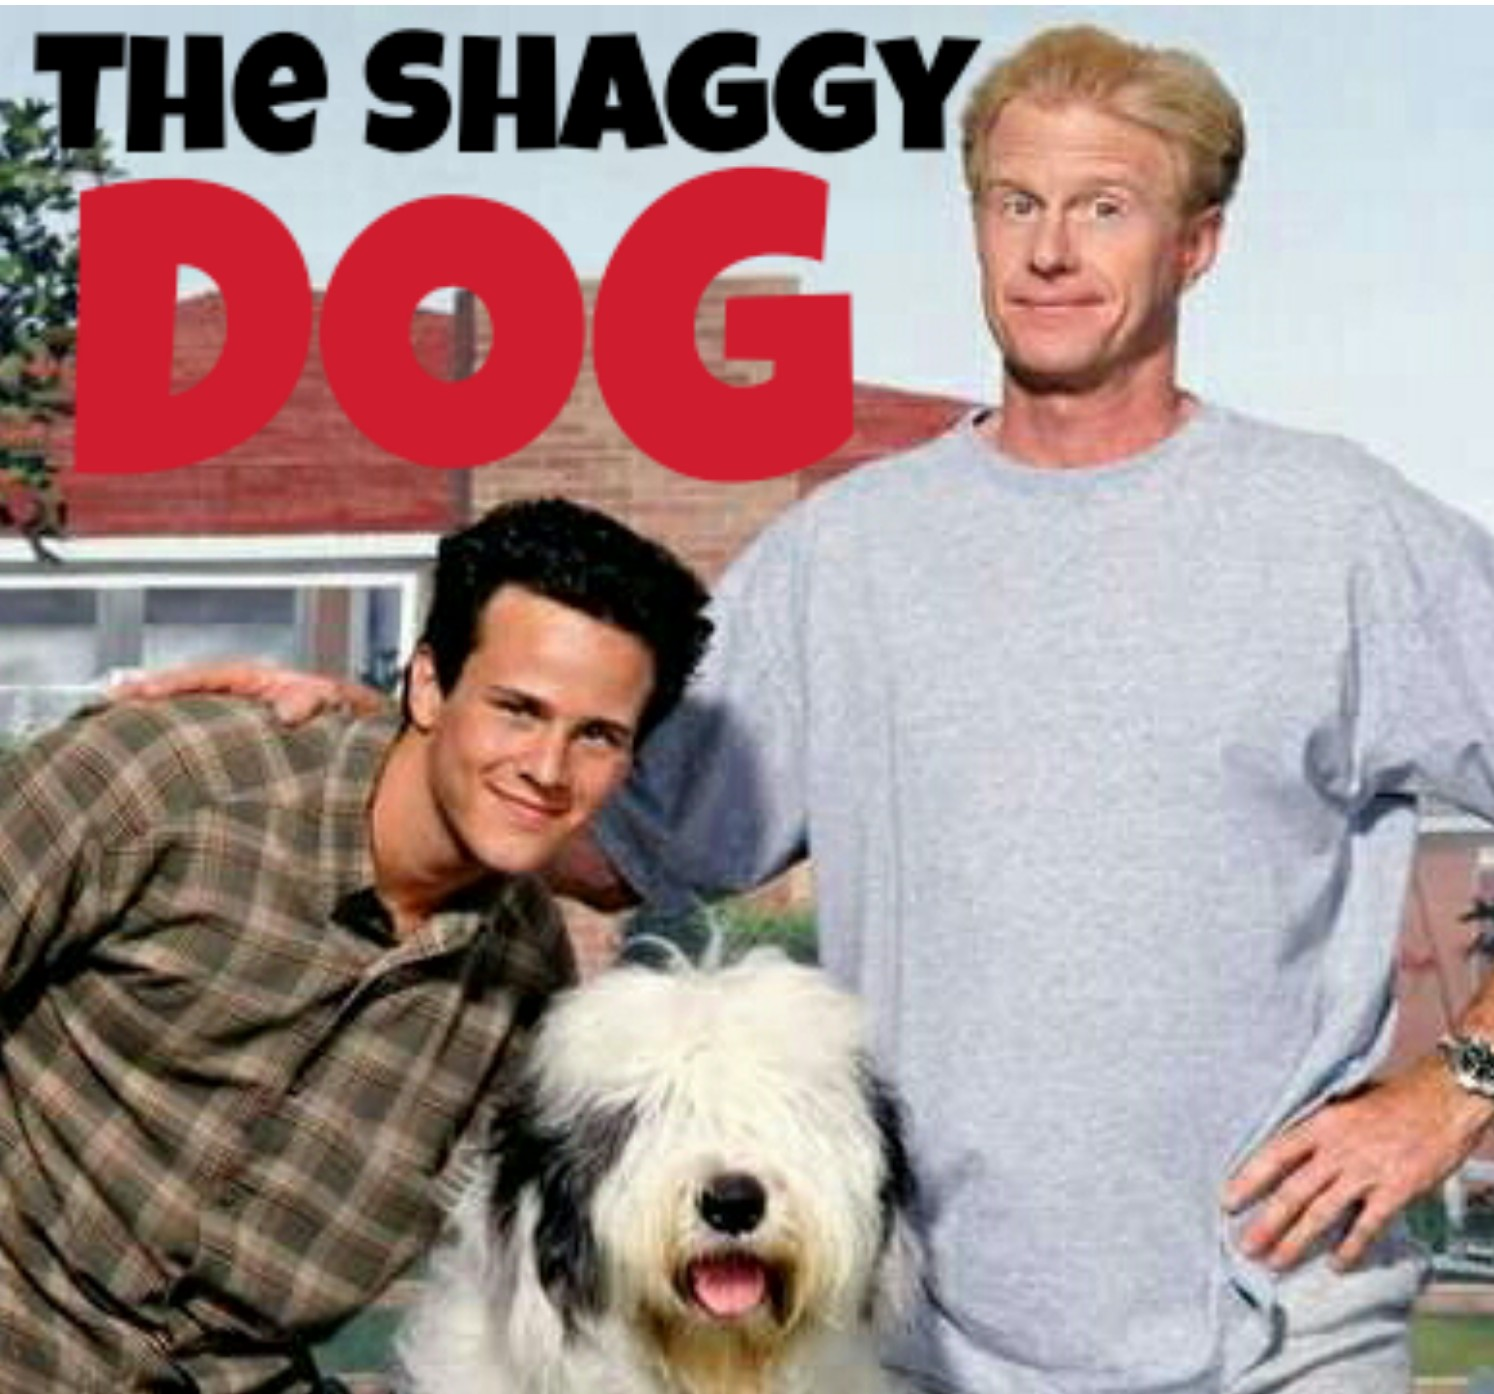 Ed Begley Jr. and Scott Weinger in The Shaggy Dog (1994)